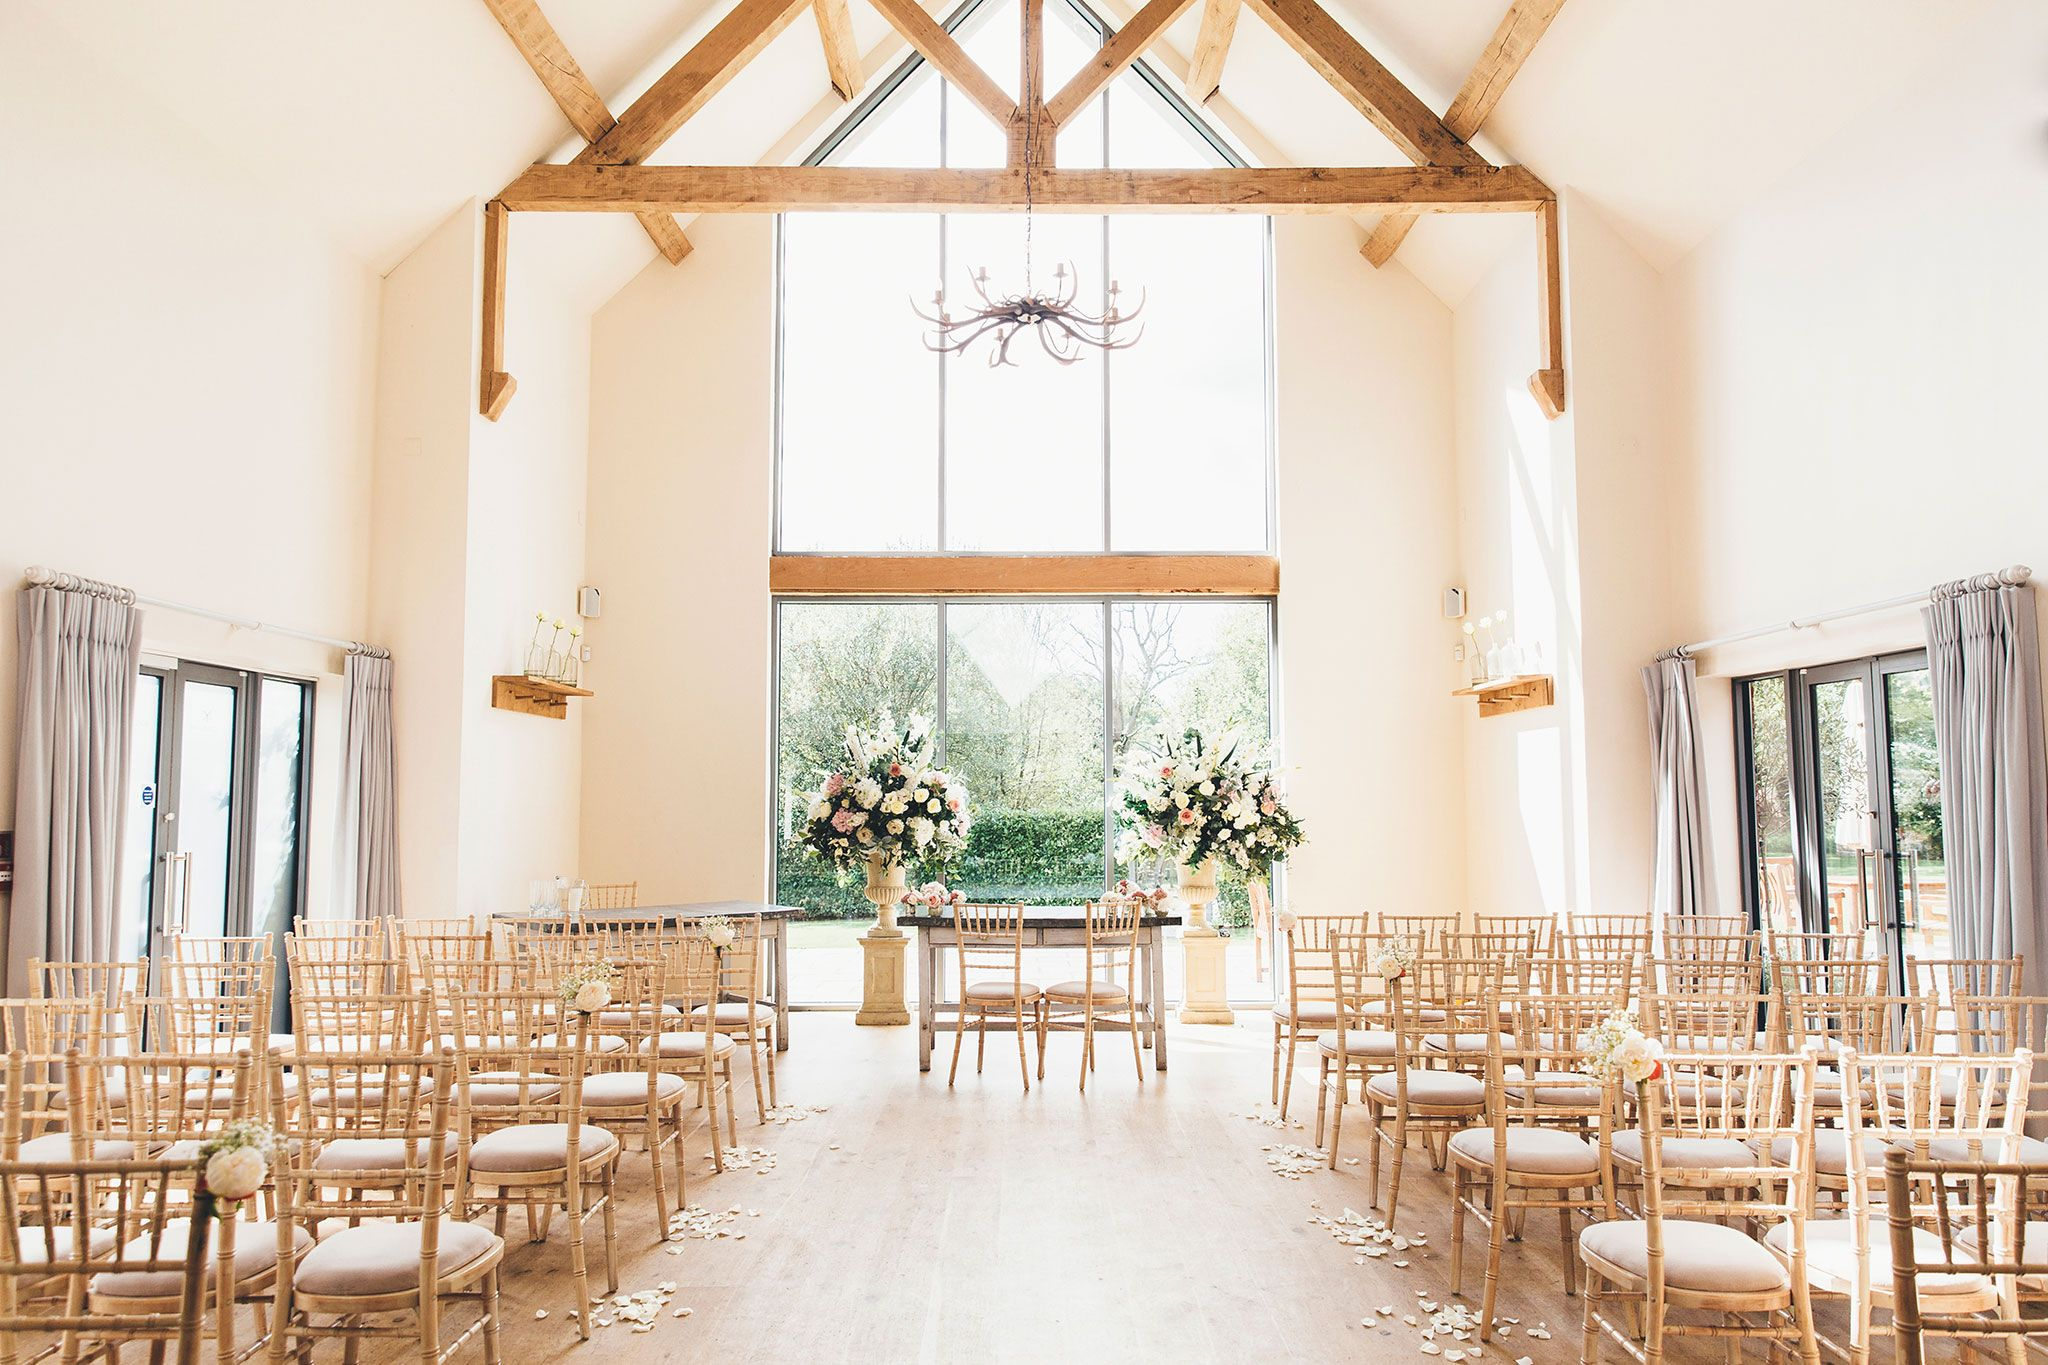 Millbridge Court Ceremonies | Surrey Wedding Venue | Barn ...